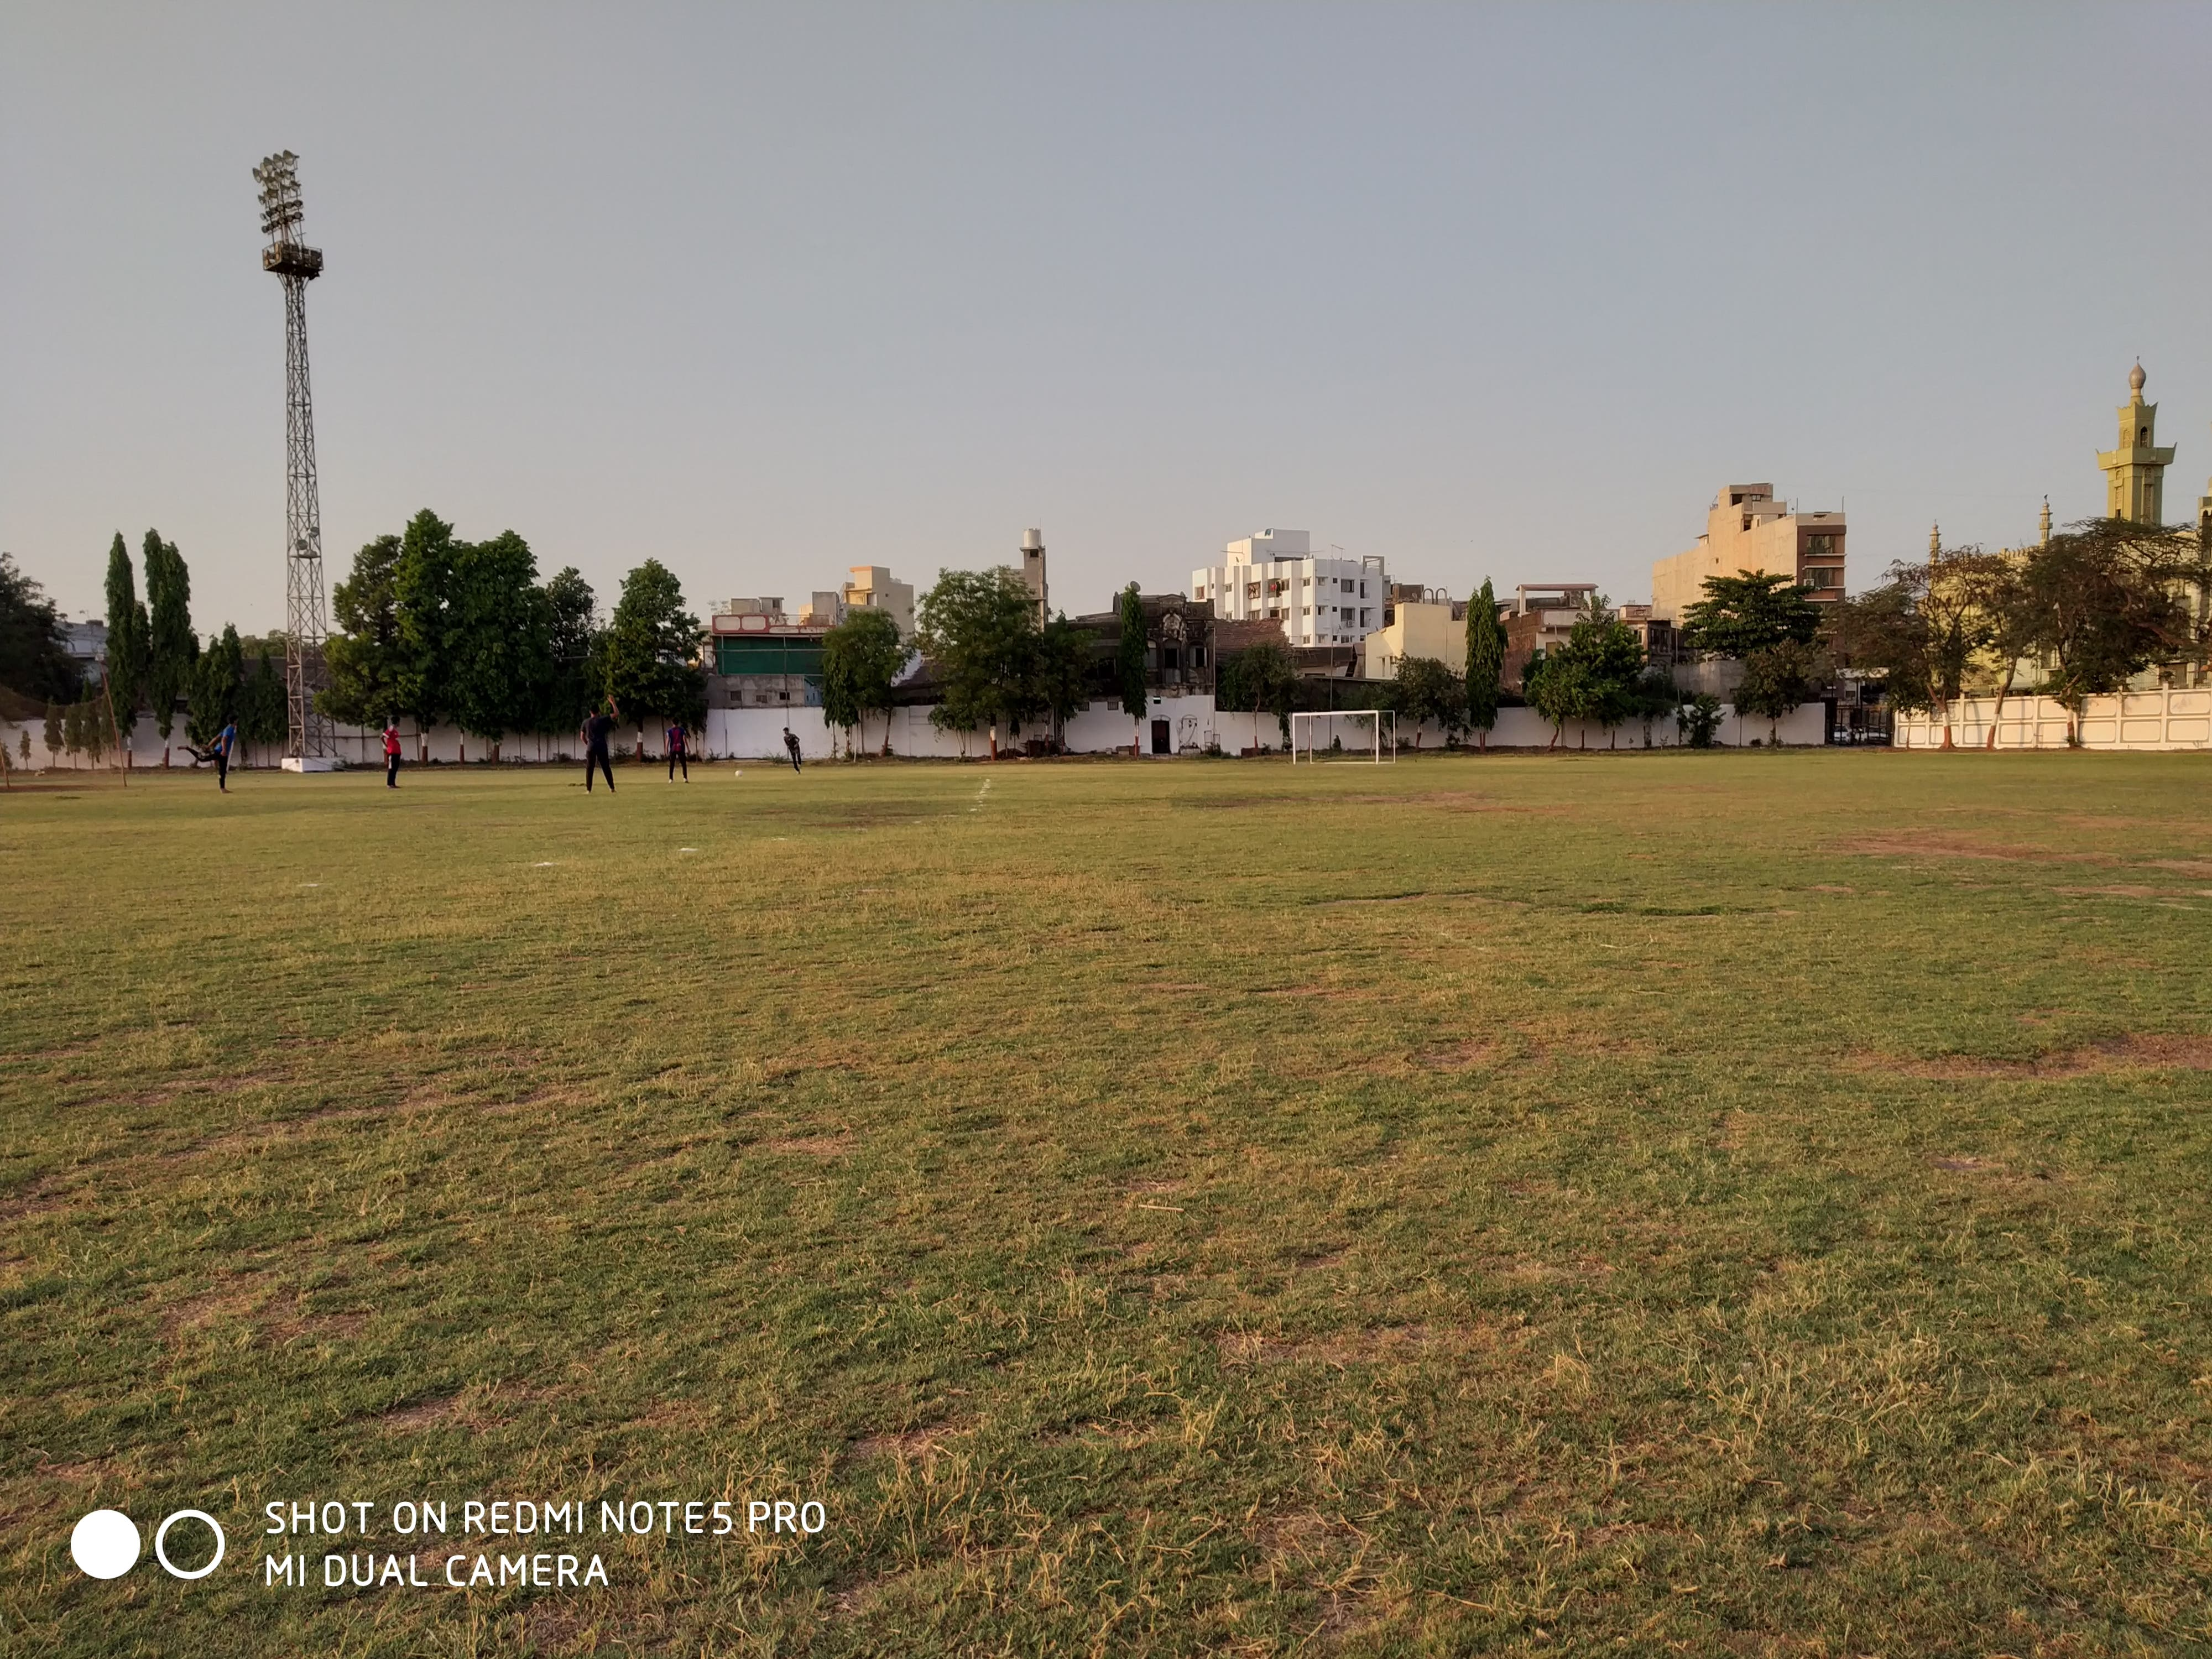 Redmi Note 5 Pro camera samples